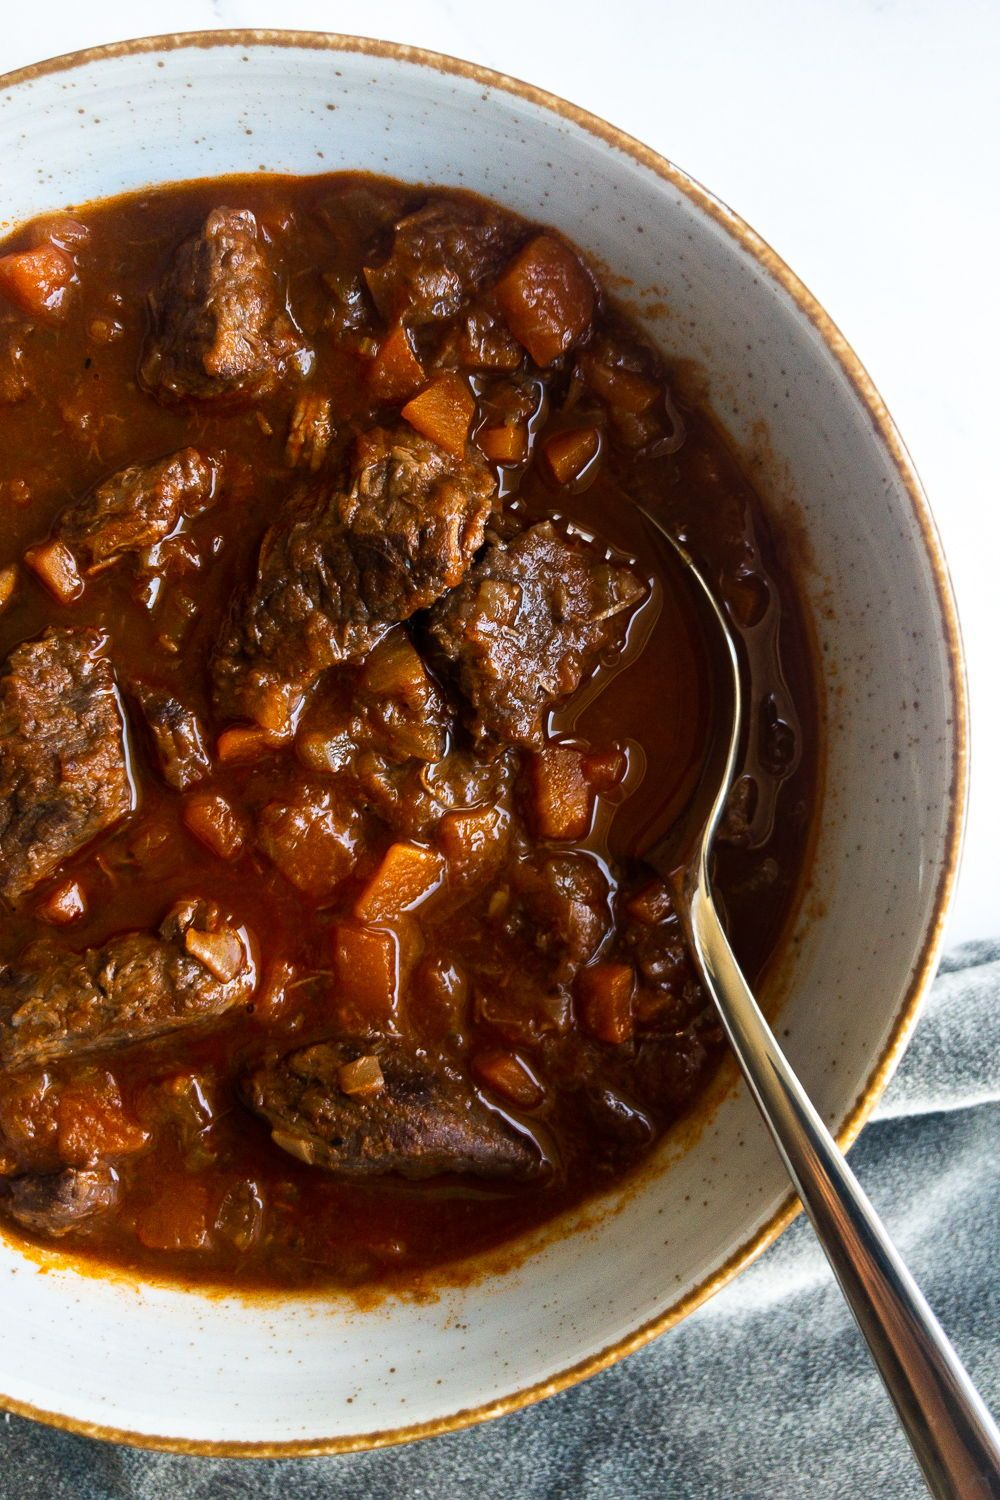 Classic Stovetop Beef Stew Recipe In 2020 Beef Stew Recipes Stove Top Beef Stew Best Beef Stew Stove Top